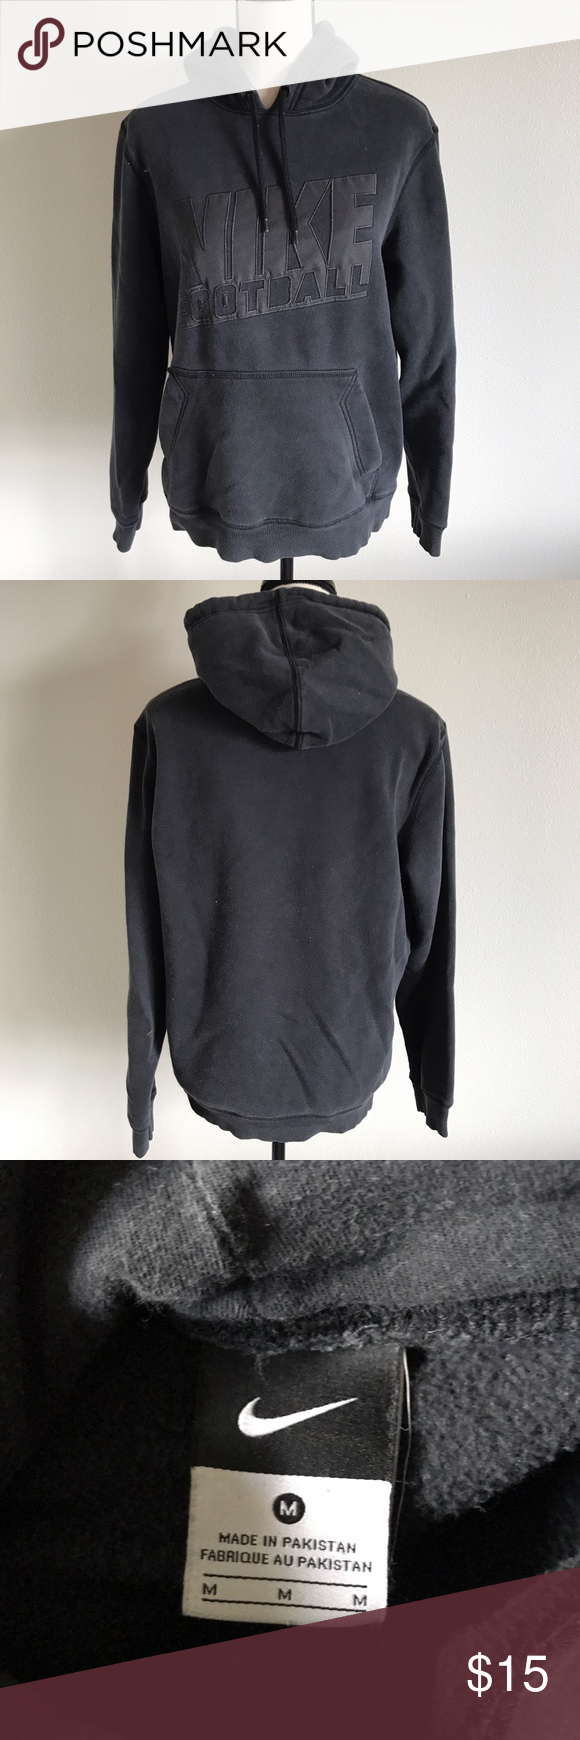 a0fa1d5922df Spotted while shopping on Poshmark  Nike sweatshirt!